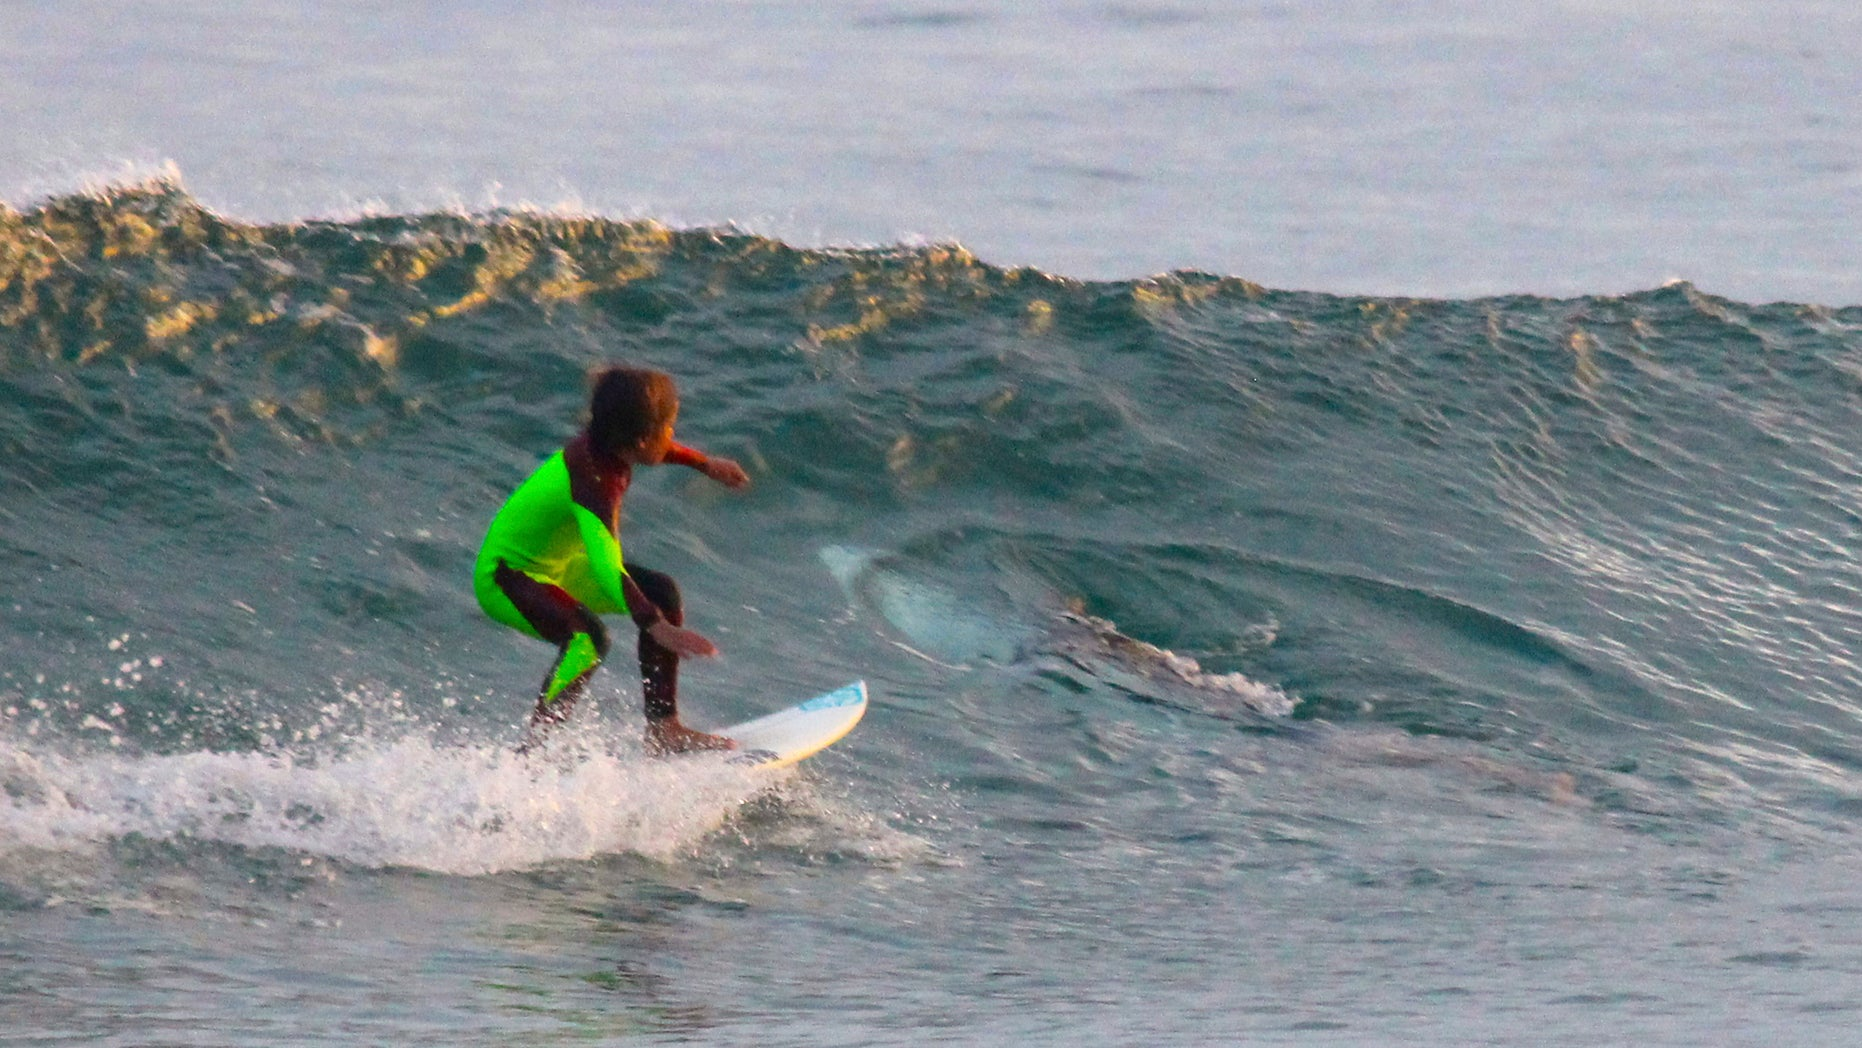 In this photo from Jan. 24, 2017, provided by Chris Hasson, 10-year-old Eden Hasson, Chris' son, surfs near what is believed to be a great white shark at Samurai Beach, Port Stephens, Australia.